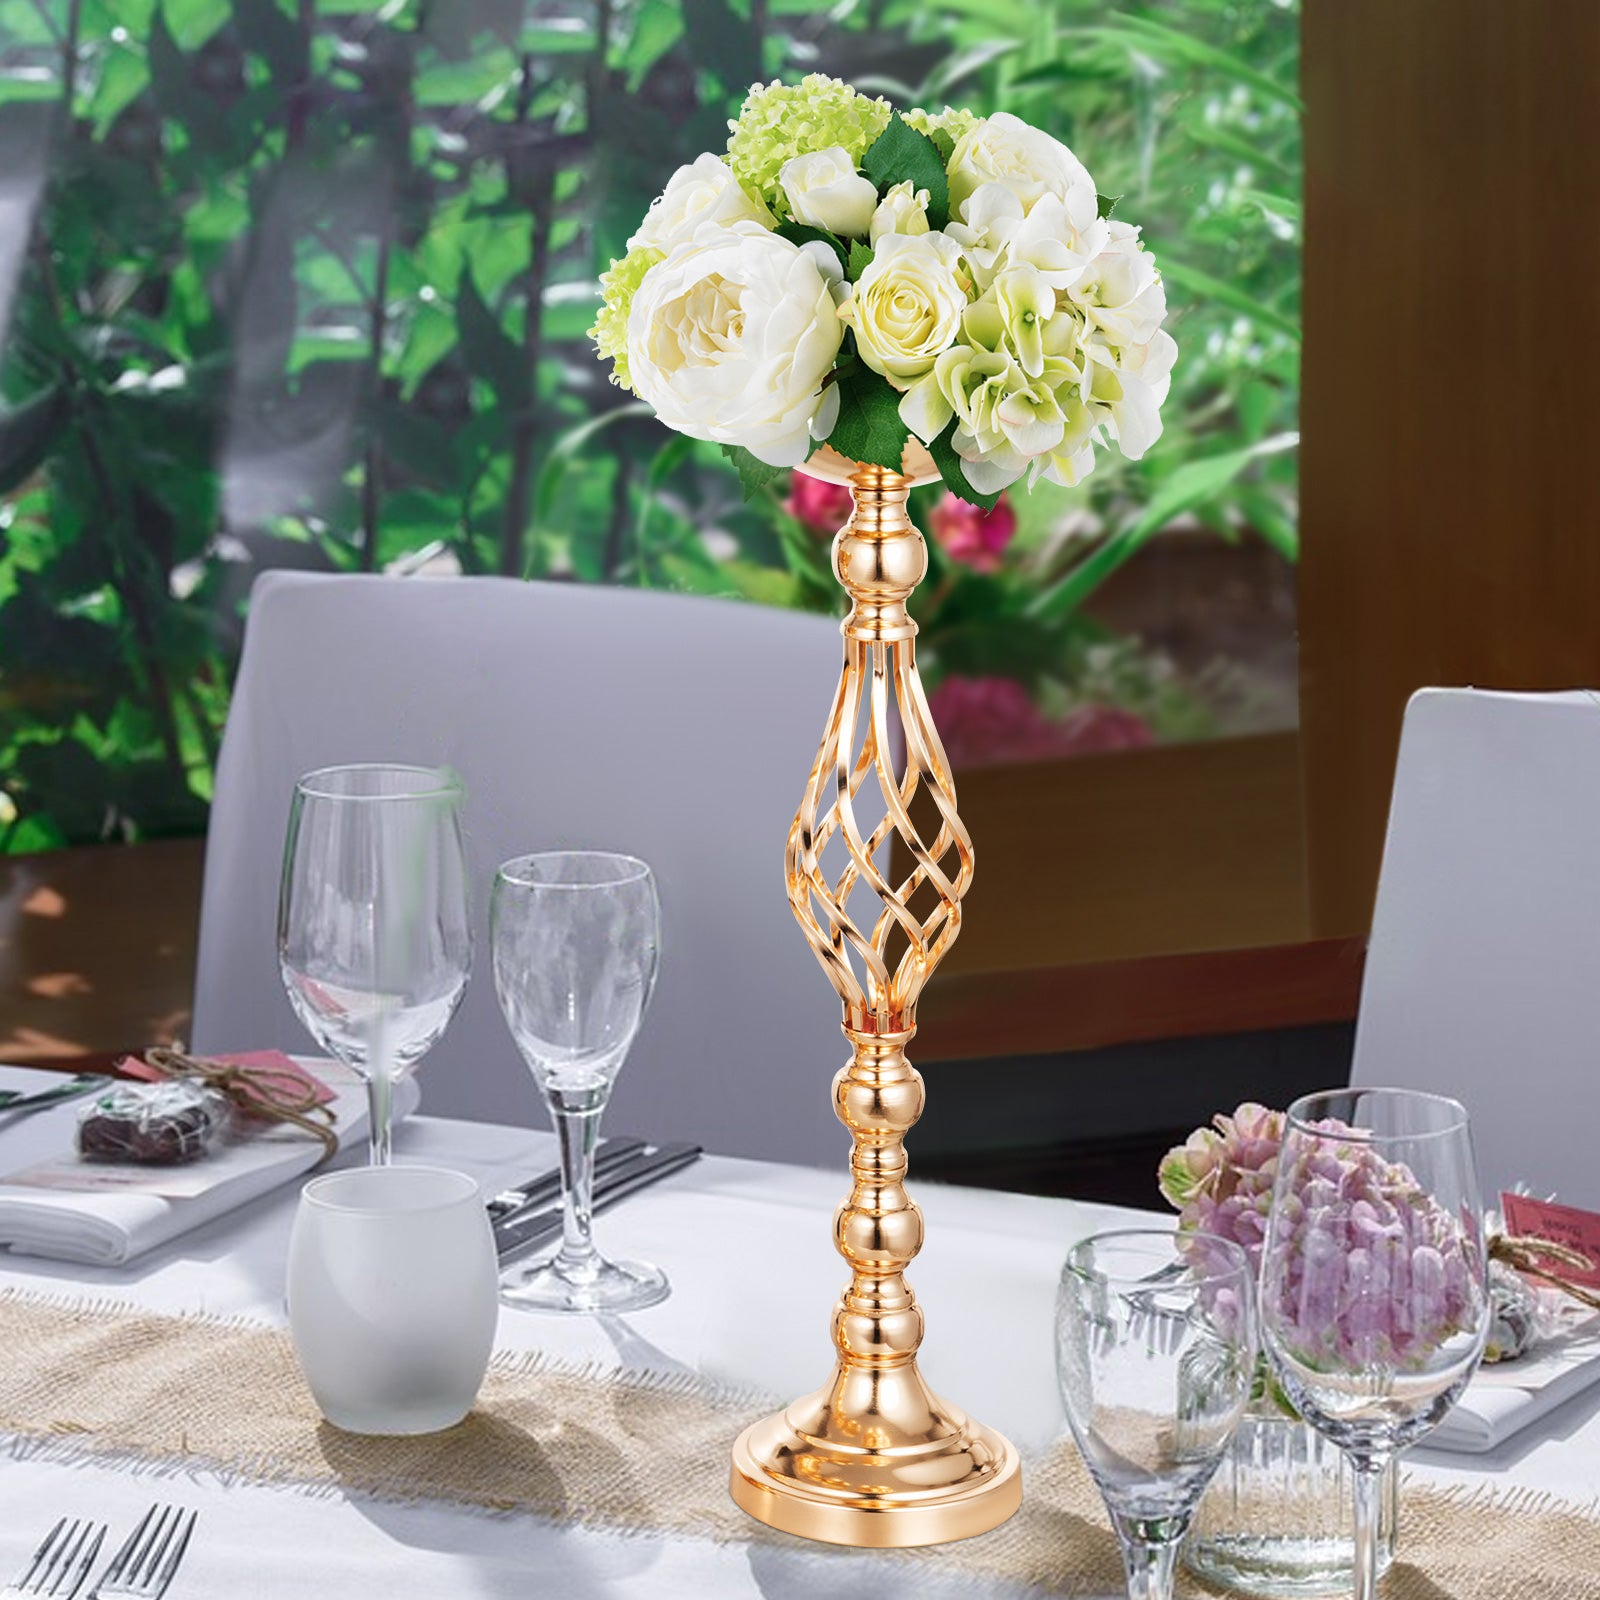 Candle Holder Vase For Wedding Metal Flower Rack 11pcs Gold Centerpiece Vase